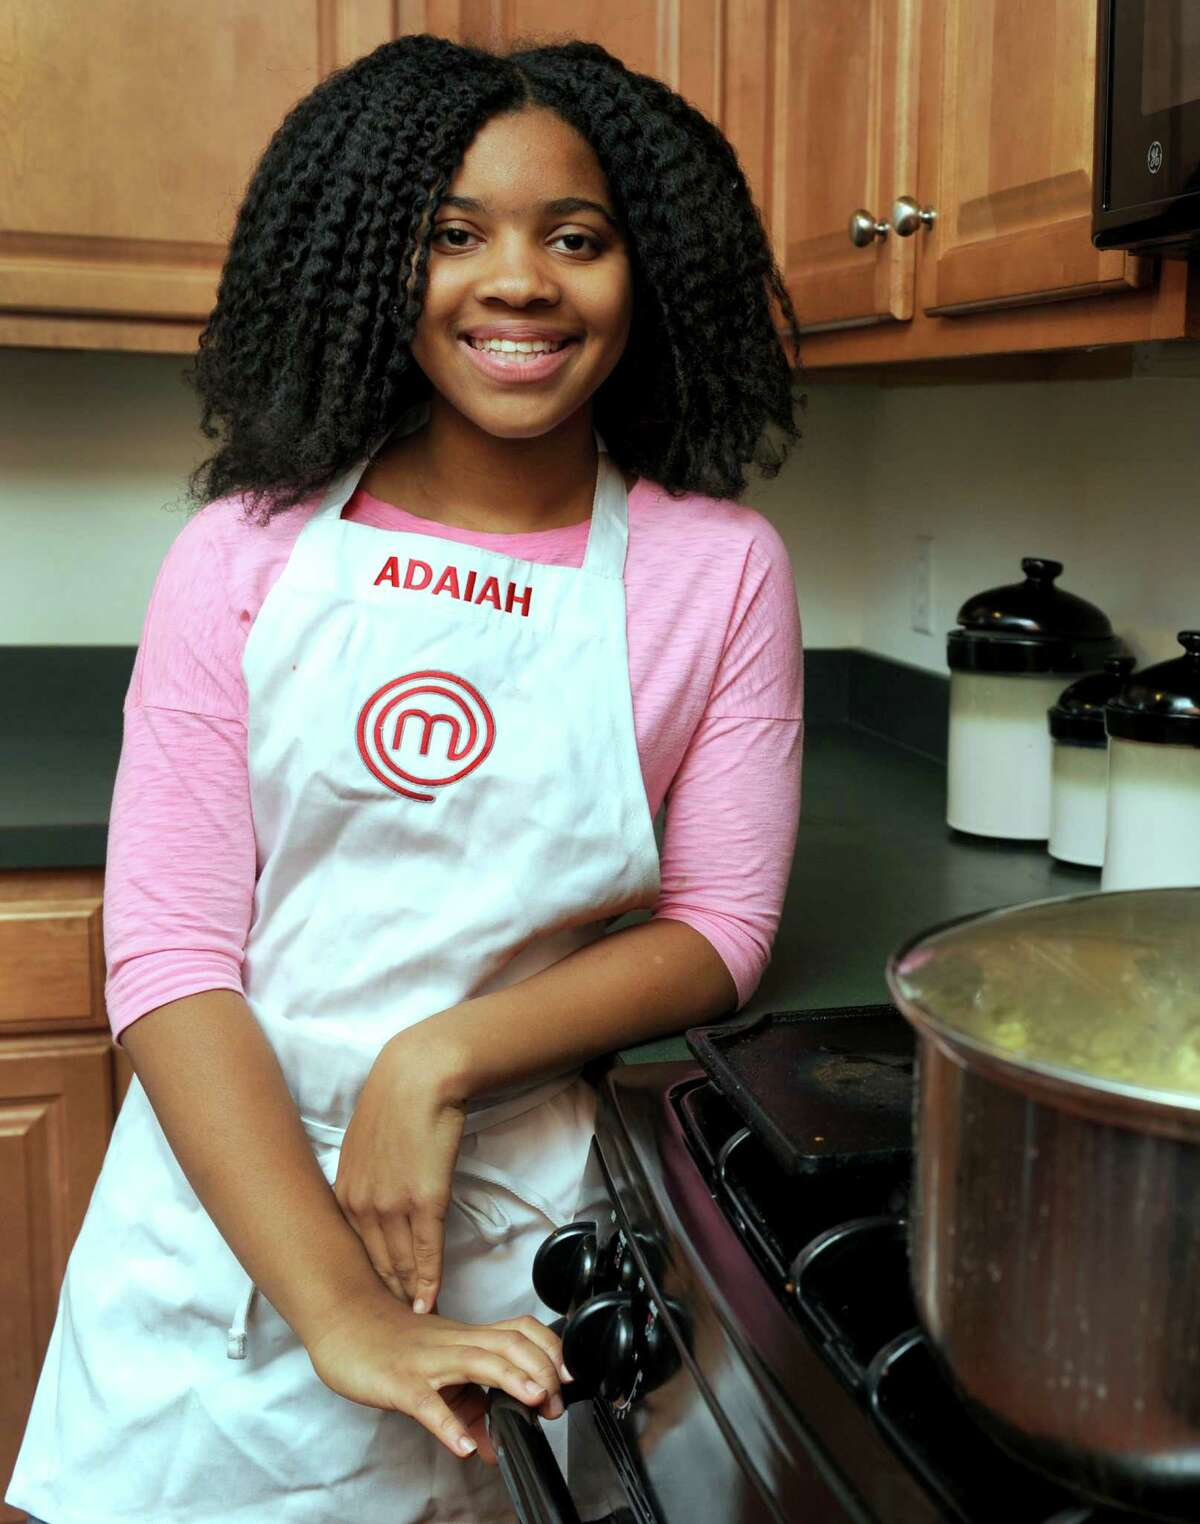 Adaiah Stevens, 12, of Danbury, Conn. is a contestant on the Fox TV show, Master Chef Junior. She is photographed in her home Wednesday, Nov. 12, 2014.